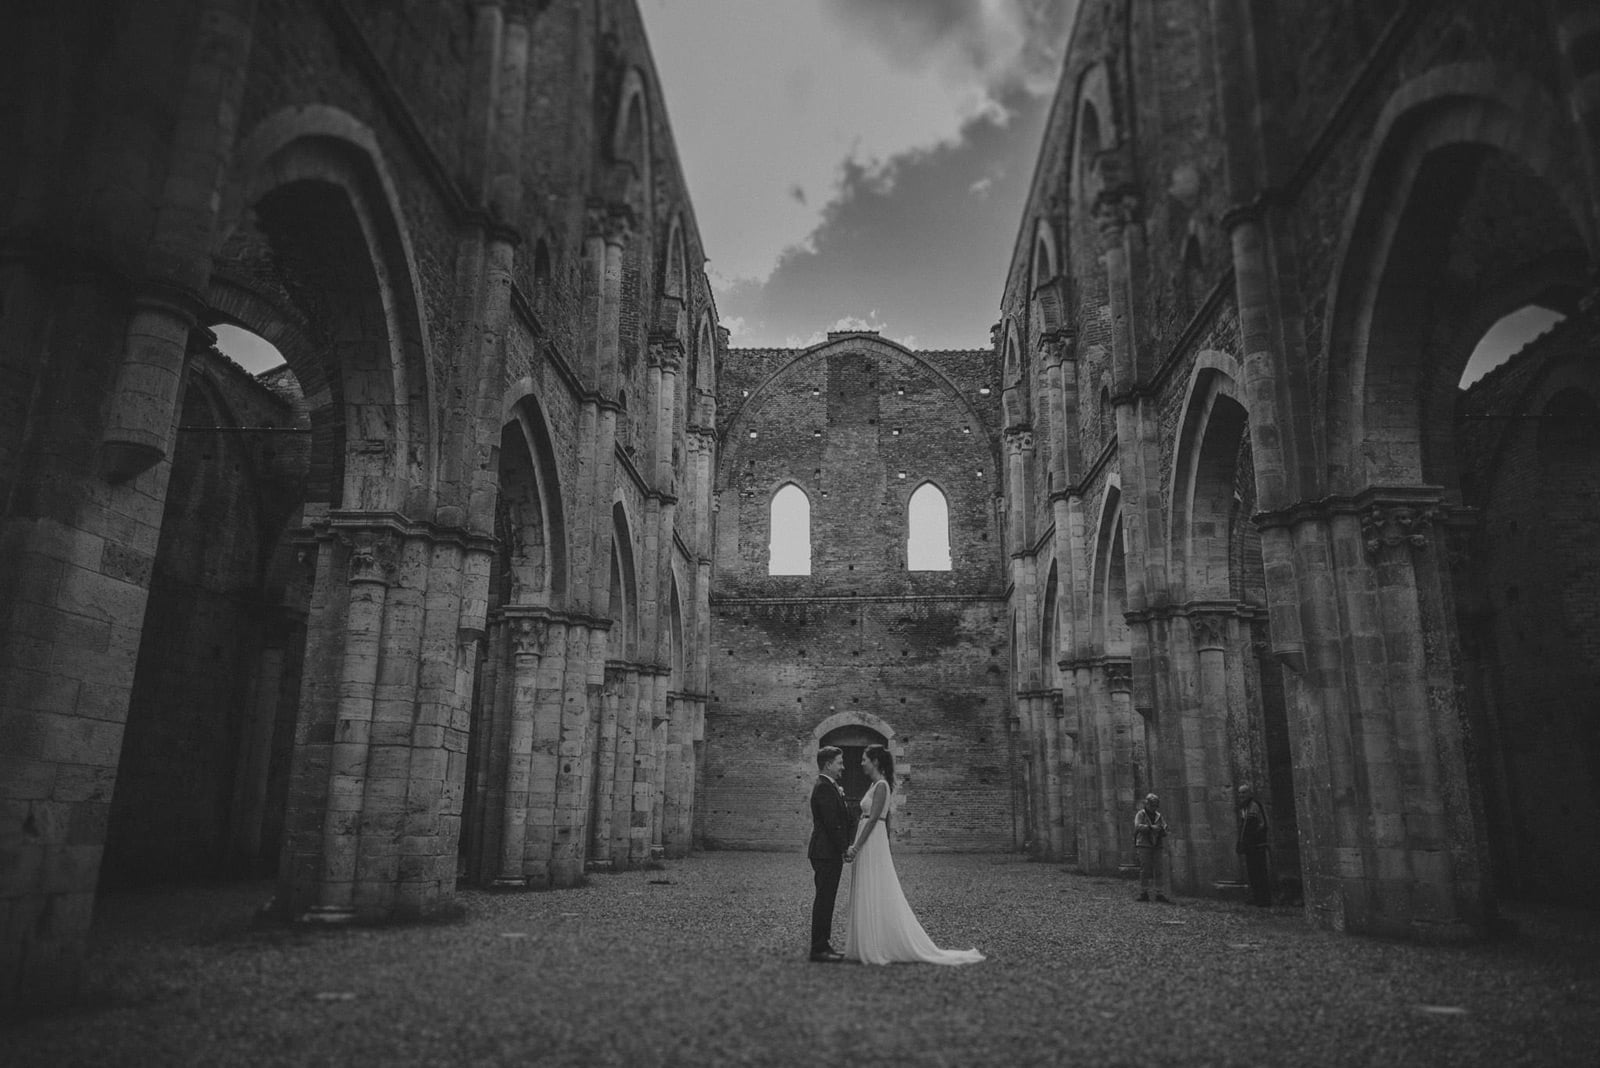 078-wedding-tuscany-san-galgano-siena-photographer